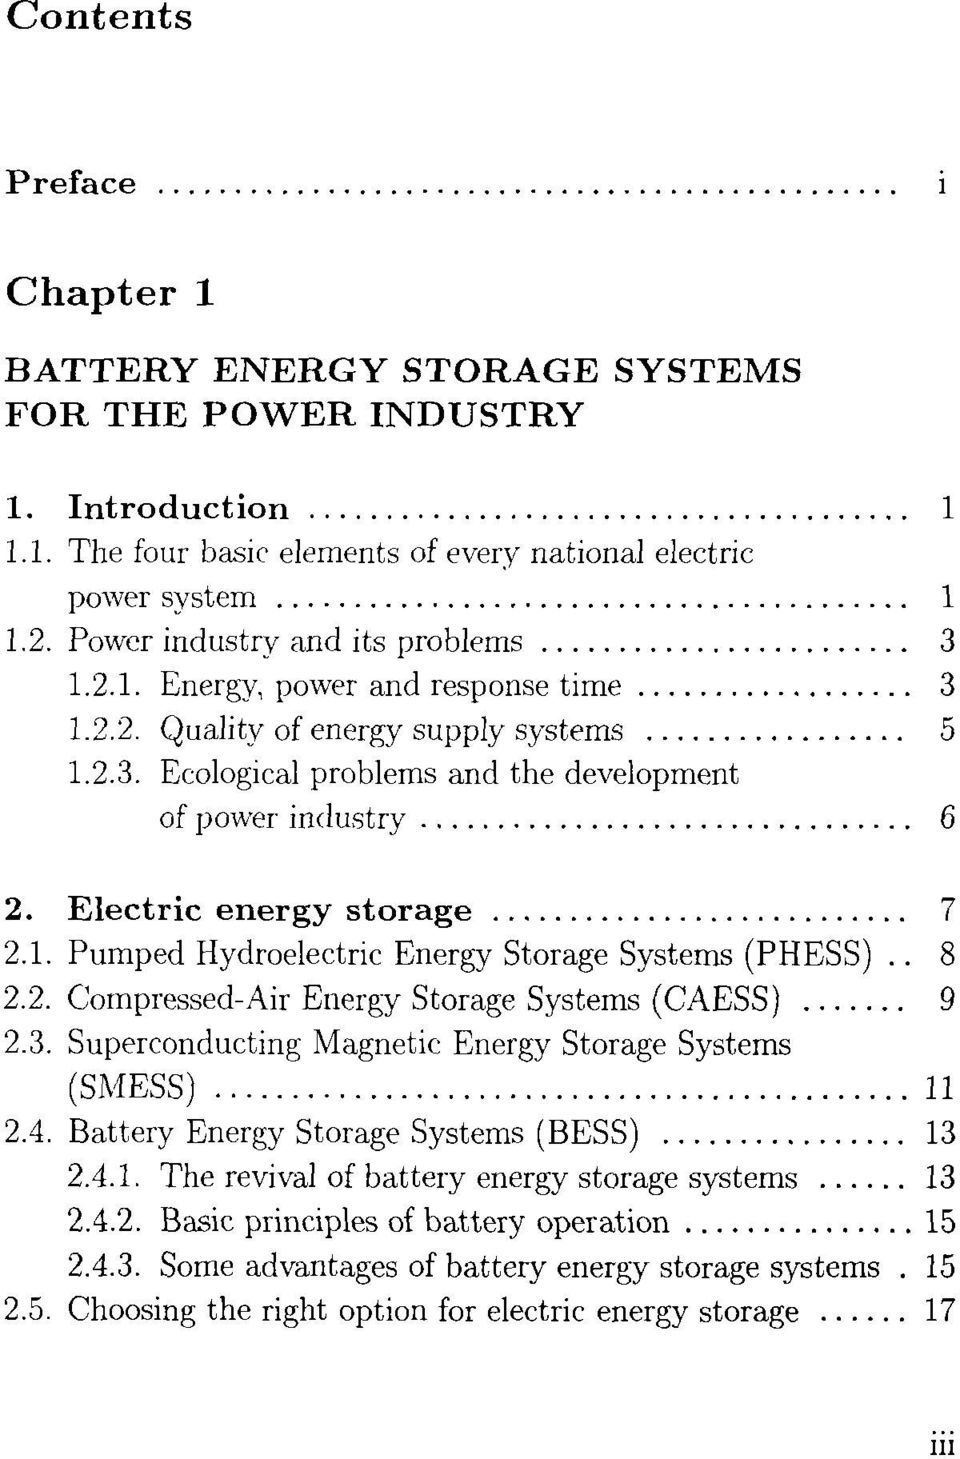 Electric energy storage... 7 2.1. Pumped Hydroelectric Energy Storage Systems (PHESS).. 8 2.2. Compressed-Air Energy Storage Systems (CAESS)... 9 2.3.